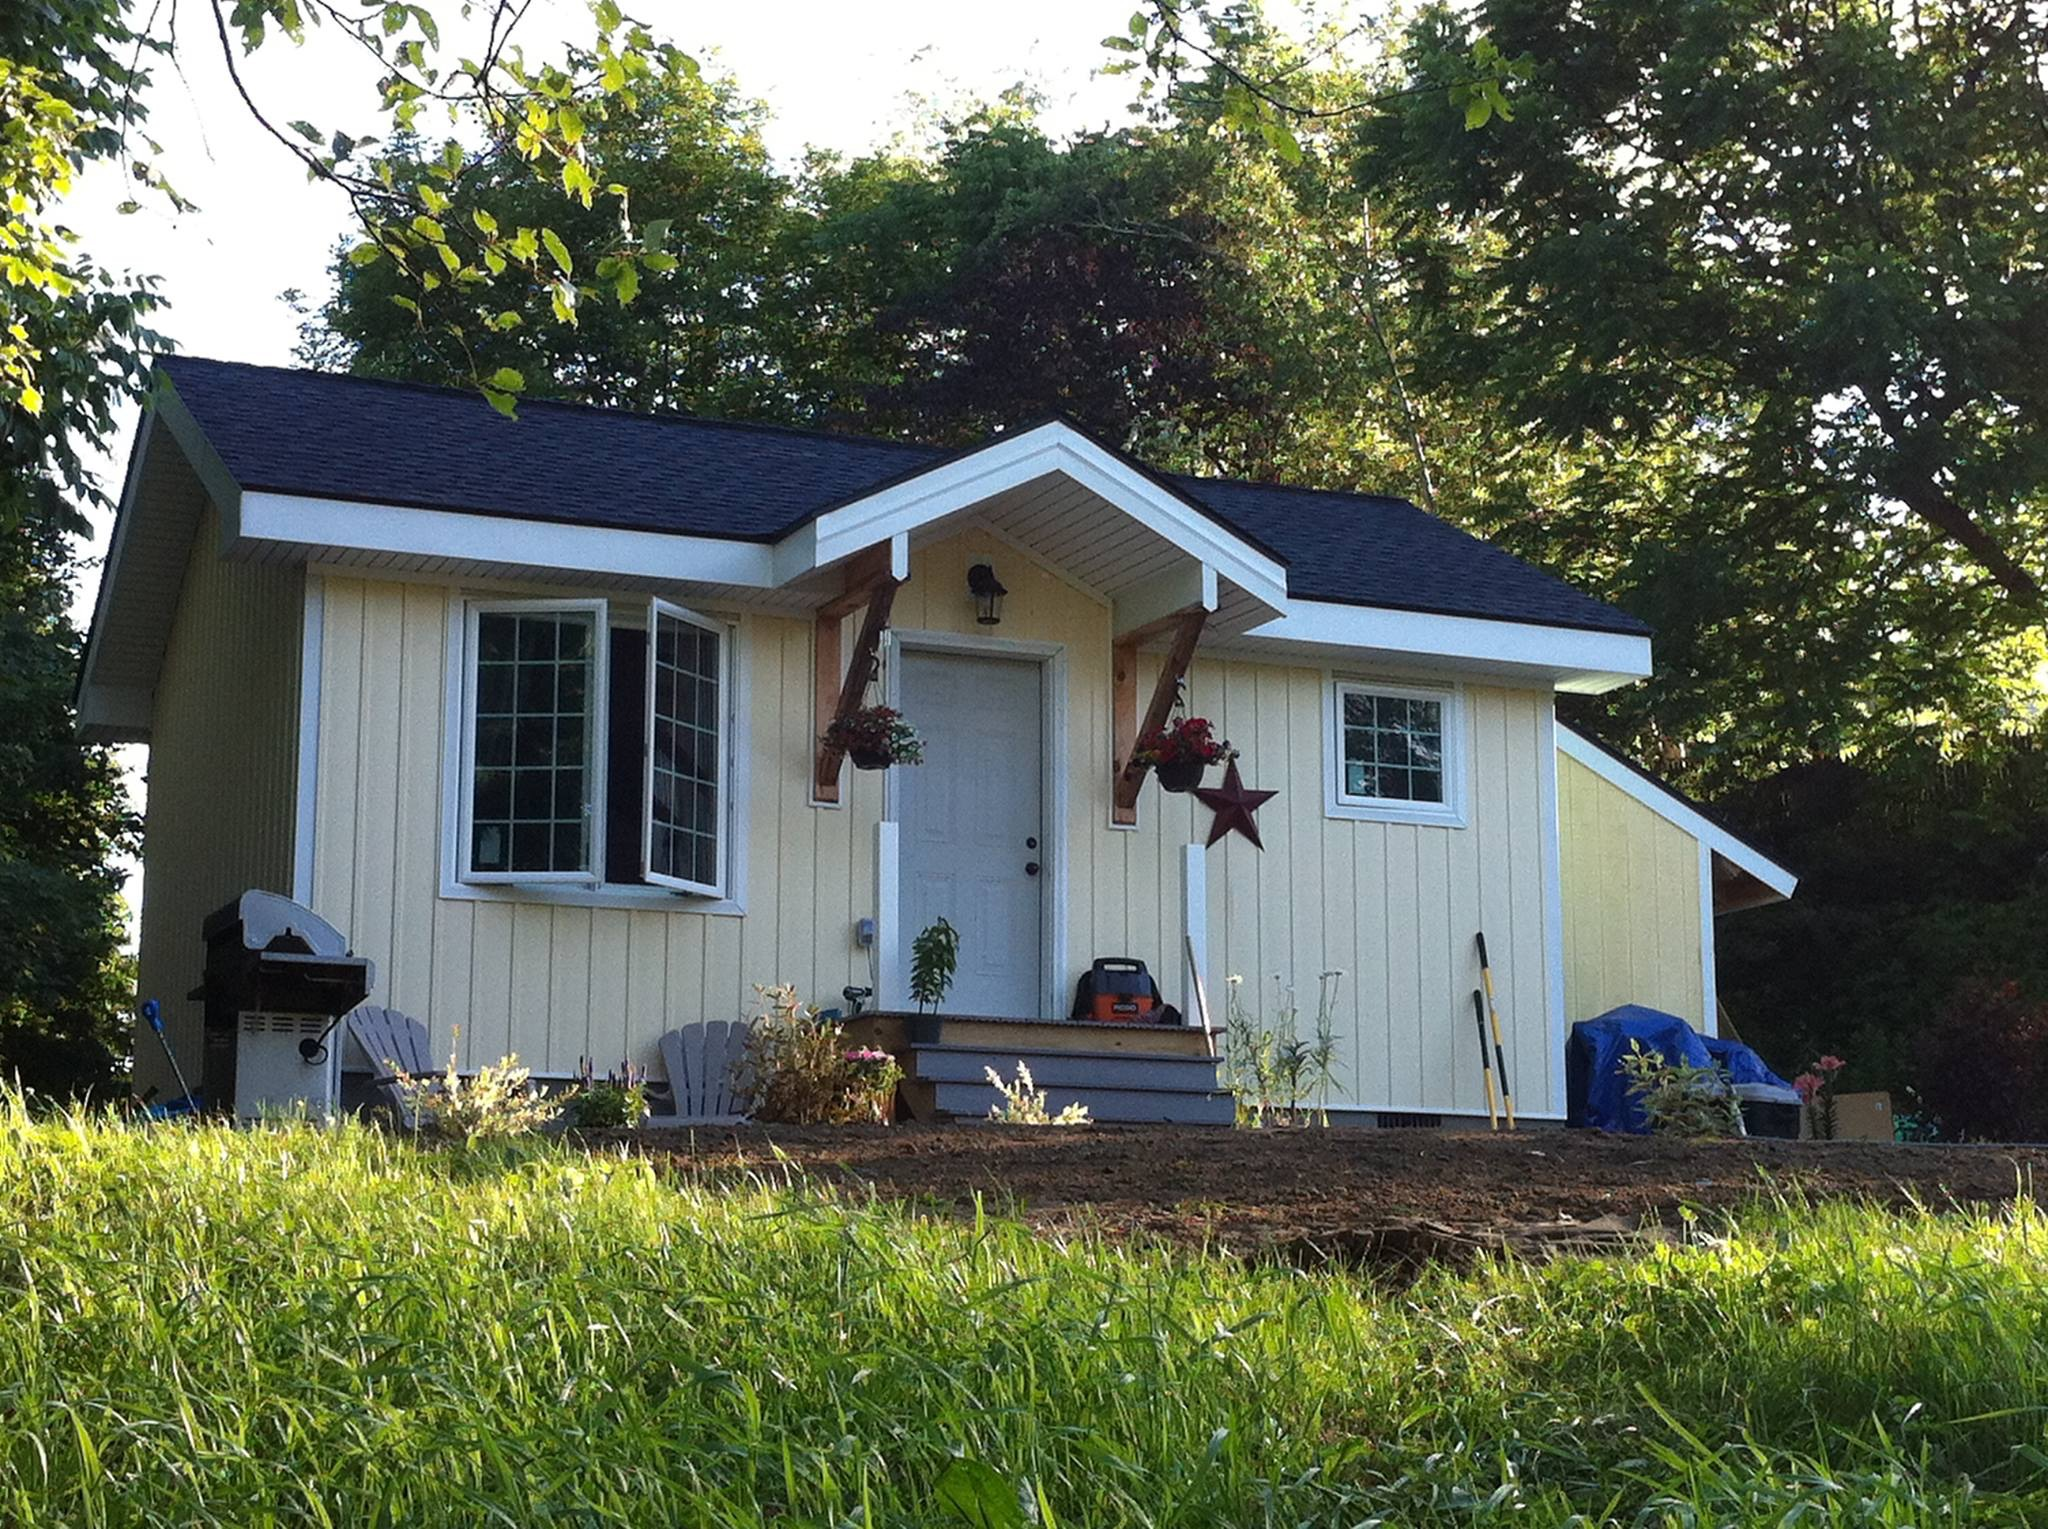 Exterior of MY house questions.-image.jpg